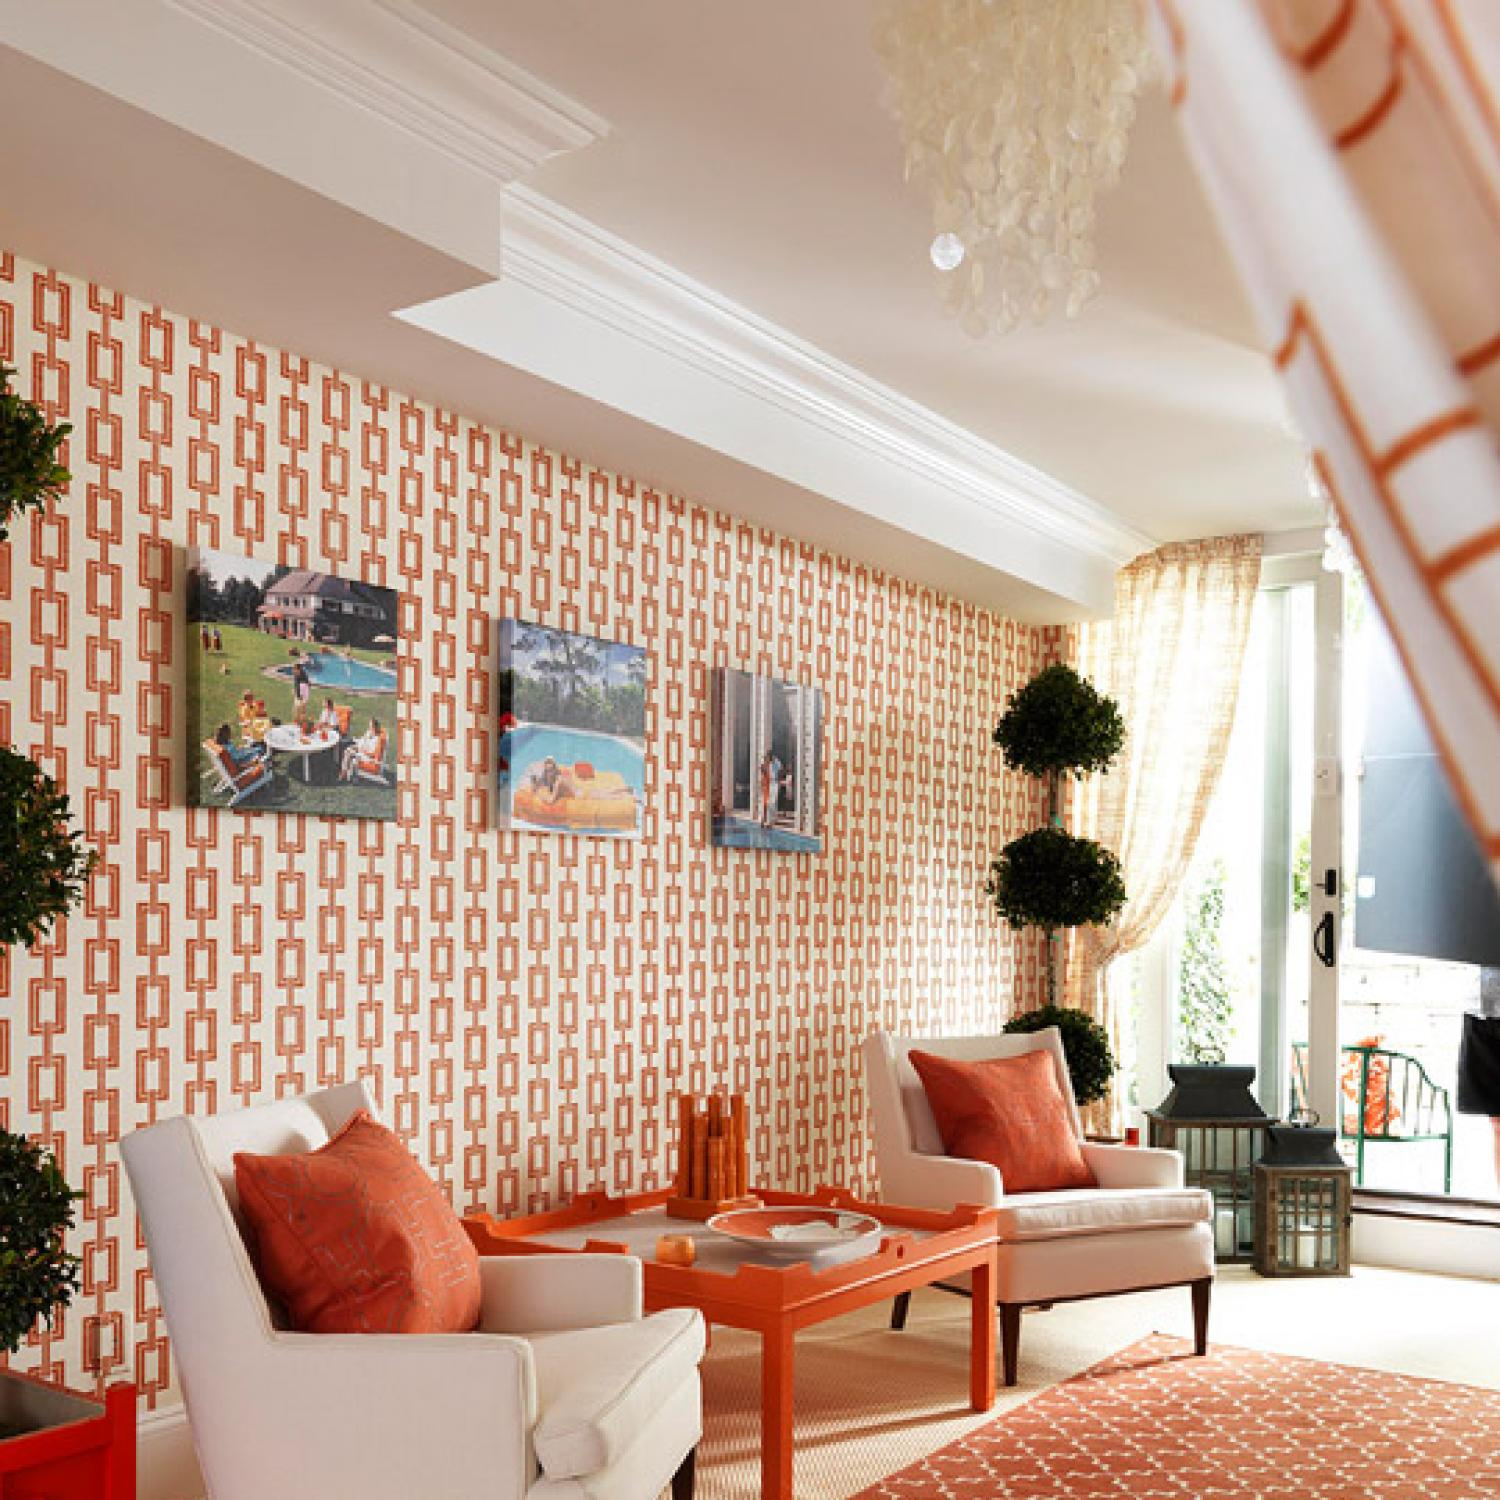 1970s Interior Design Ideas with Photo Examples. Dotted white and red wallpaper for the vintage living with orange coffee table